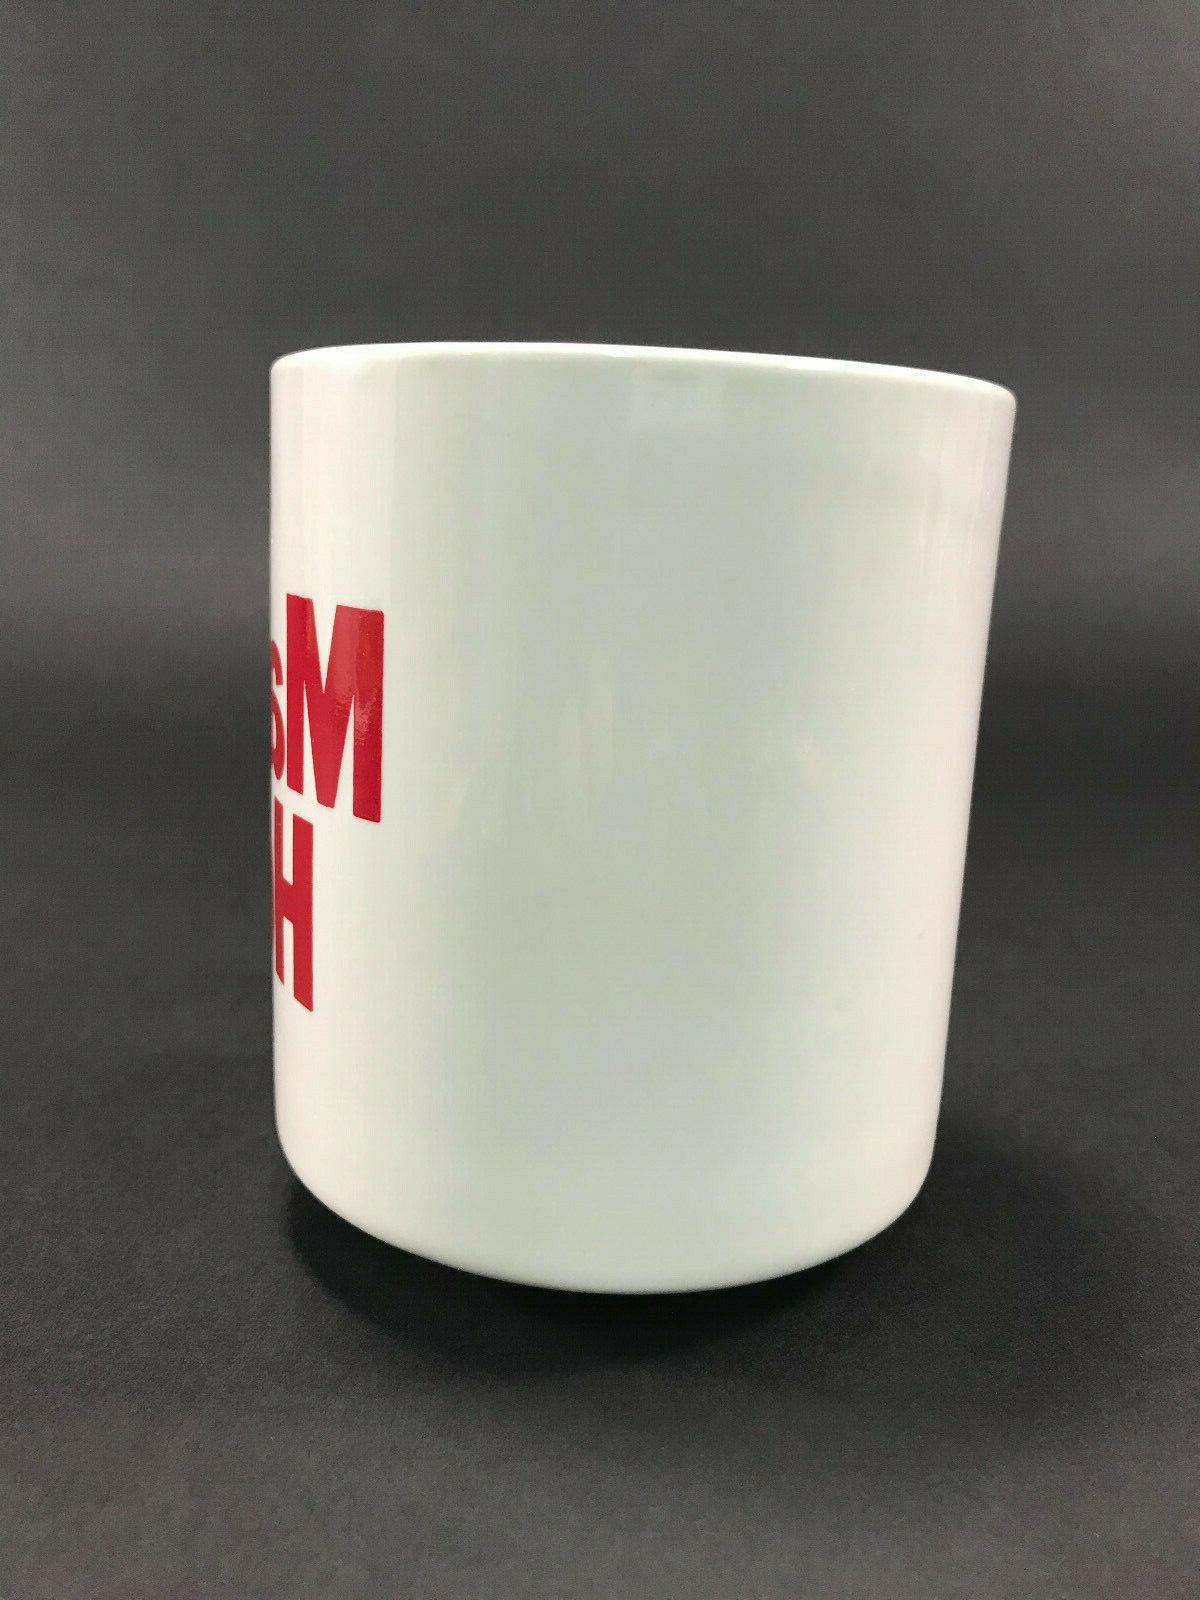 Maxwell House oz Mug Cup w/Red Lettering England